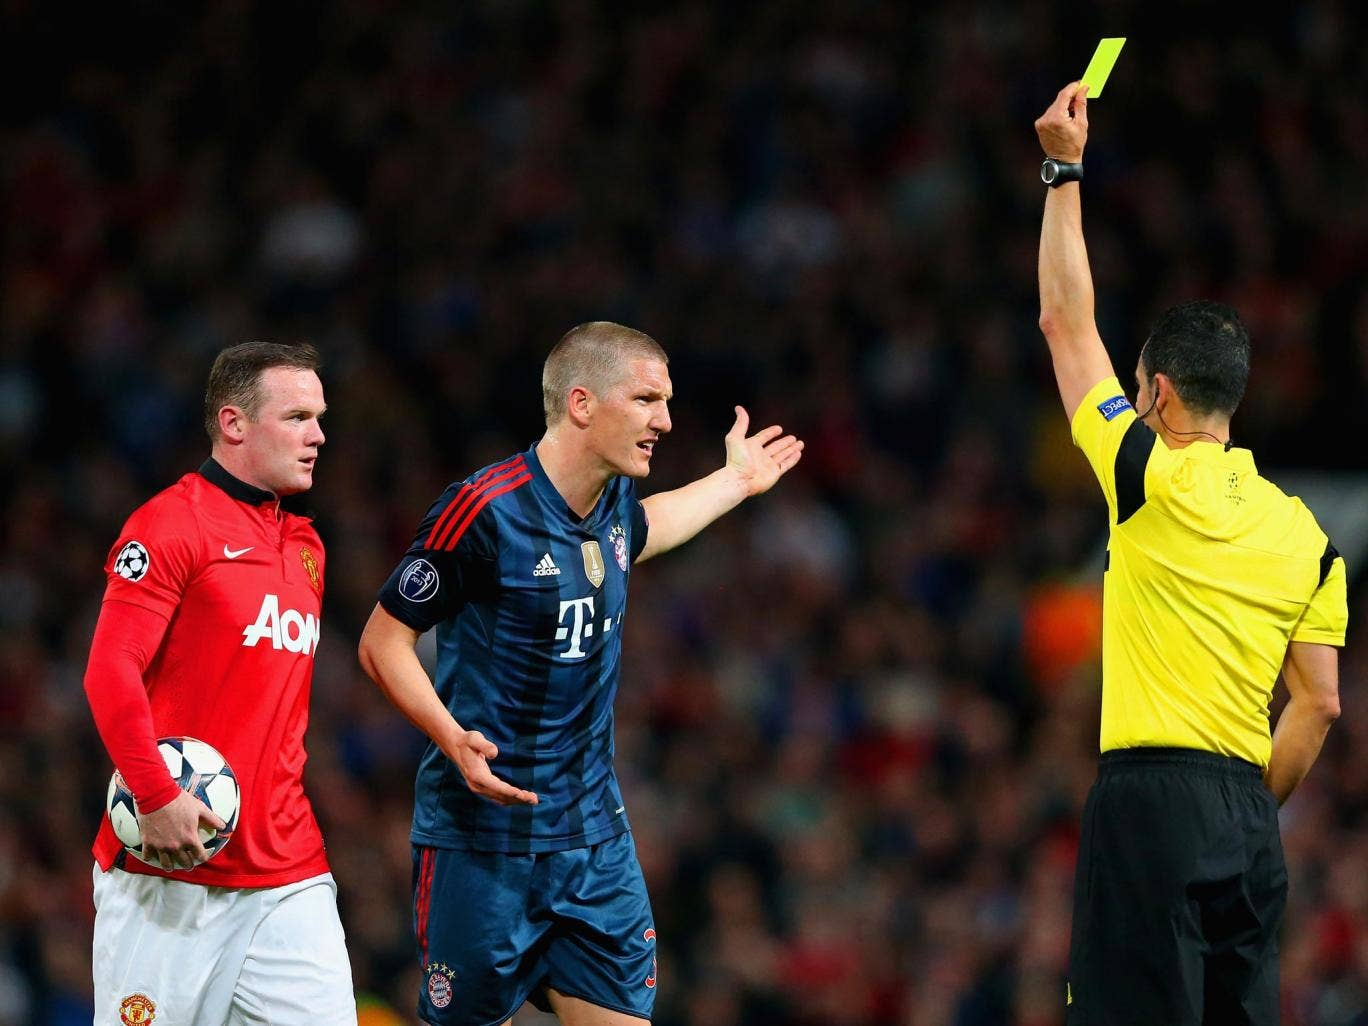 Bastian Schweinsteiger is shown a yellow card during the 1-1 draw between Manchester United and Bastian Schweinsteiger